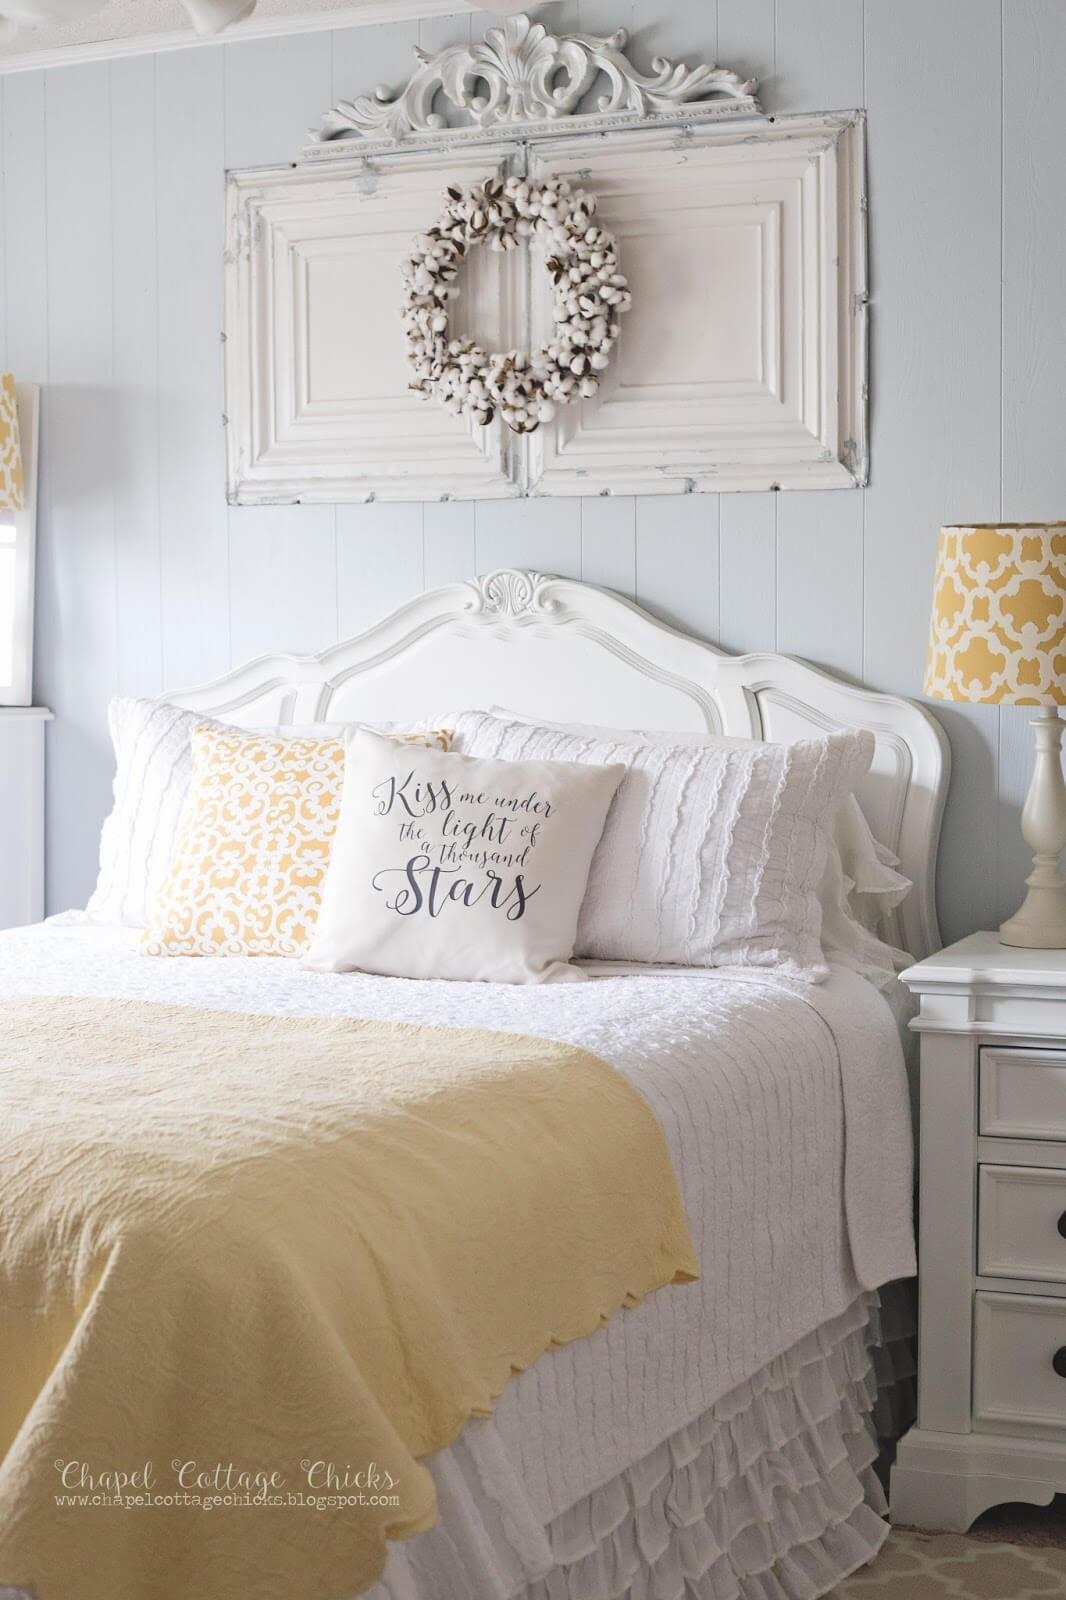 25 Best Cozy Bedroom Decor Ideas and Designs for 2020 on Room Decor.  id=54916